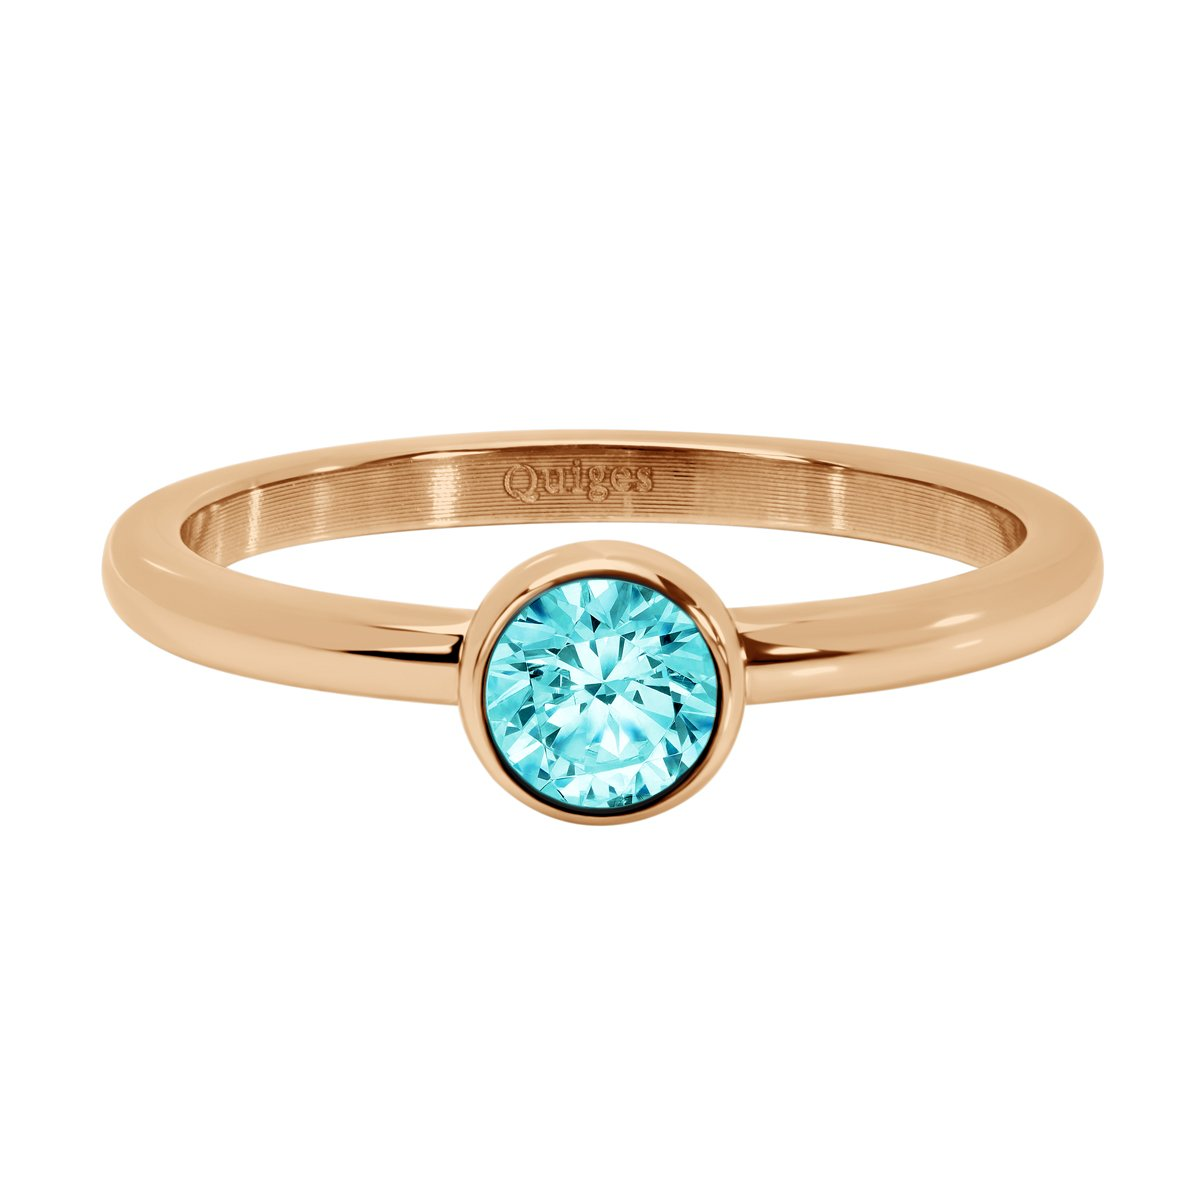 Quiges Stainless Steel Rose Gold with Round Light Blue Zirconia Inner Ring 2mm Height for Stackable Ring Collection